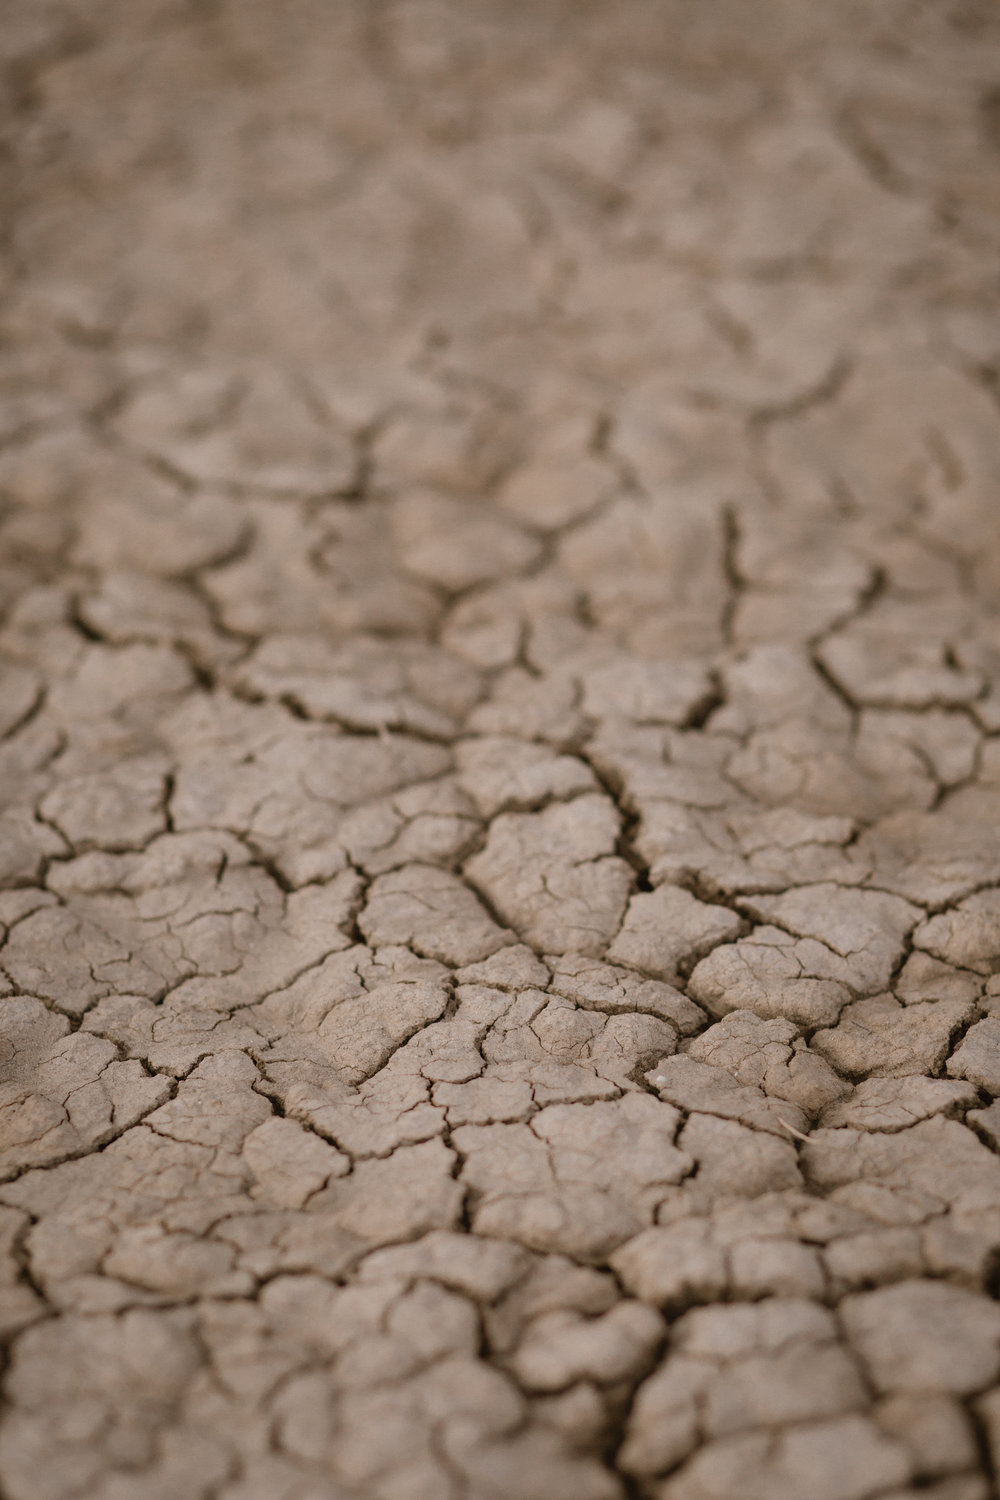 Dry Lake bed surface in Anza Borrego, San Diego